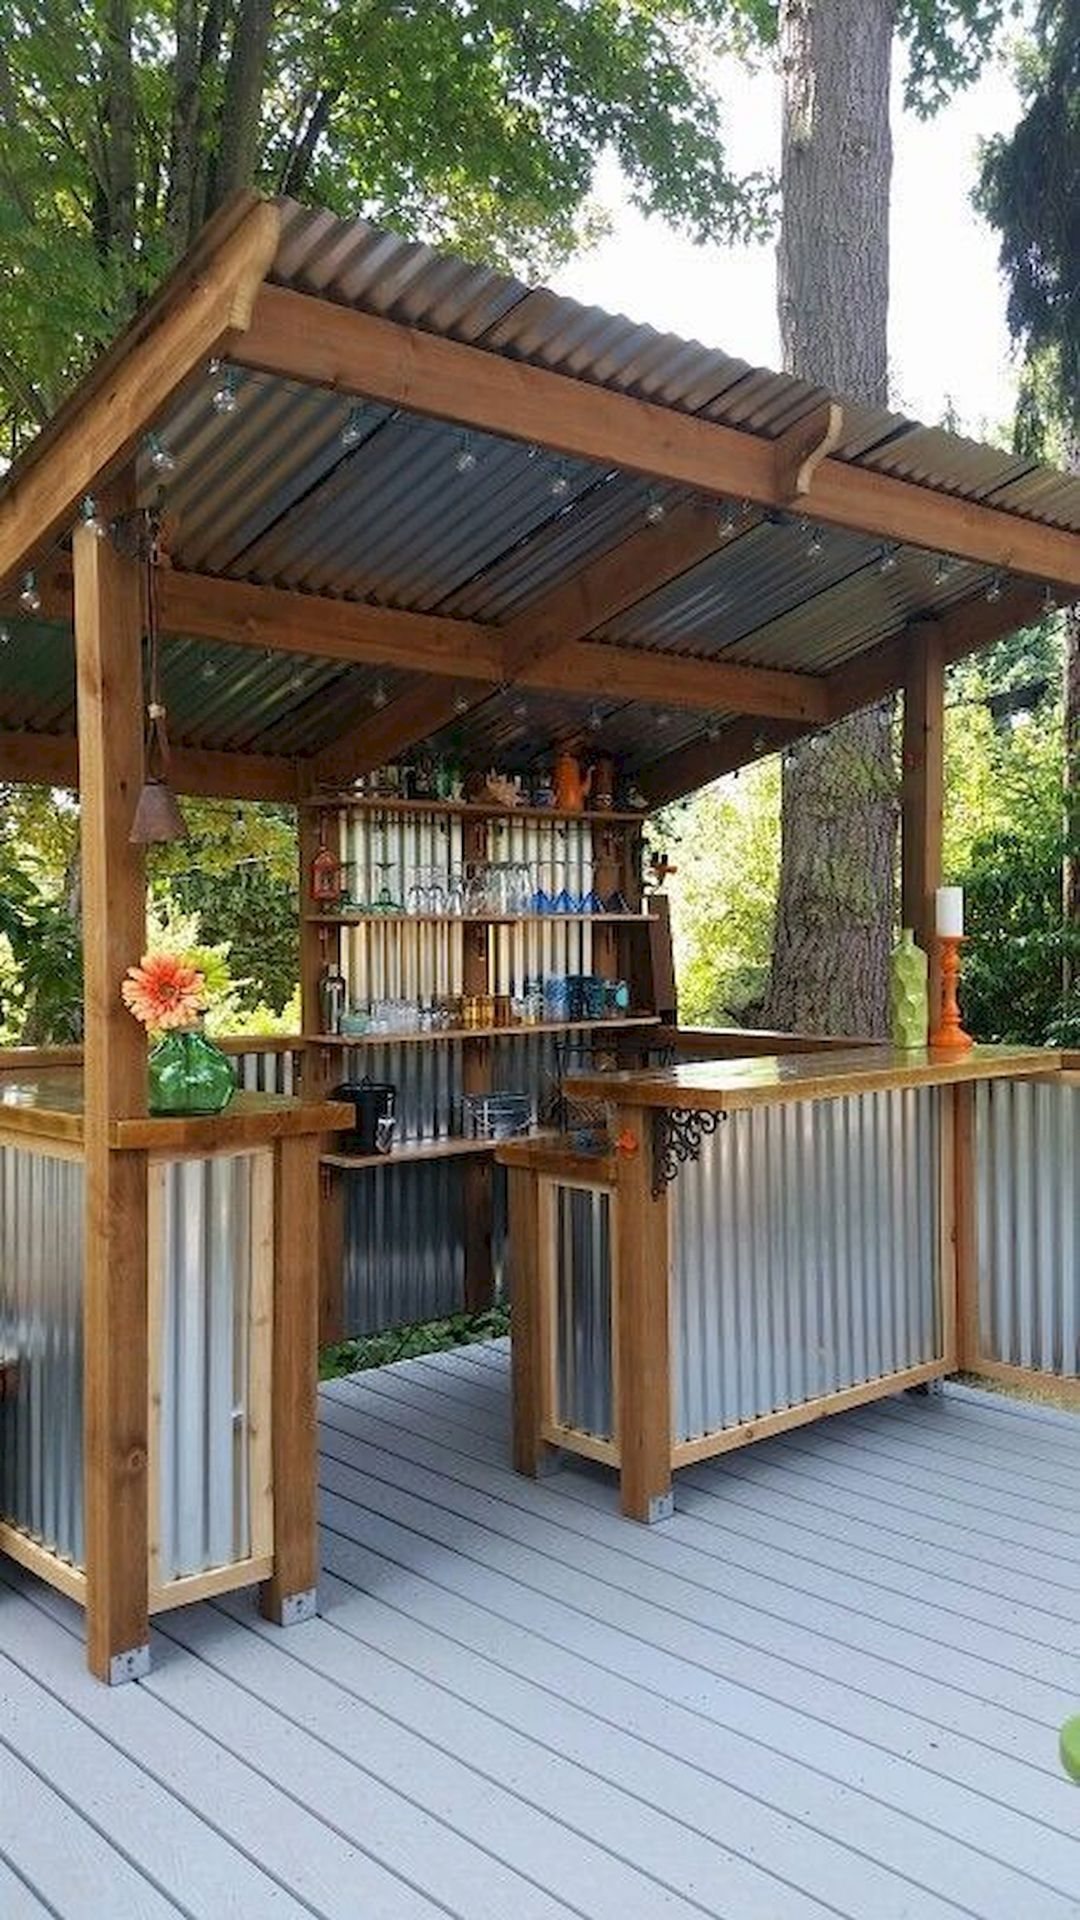 Backyard Patio Ideas 80 Bachelor Pad Backyard Bar Outdoor pertaining to 15 Some of the Coolest Concepts of How to Build Backyard Tiki Bar Ideas